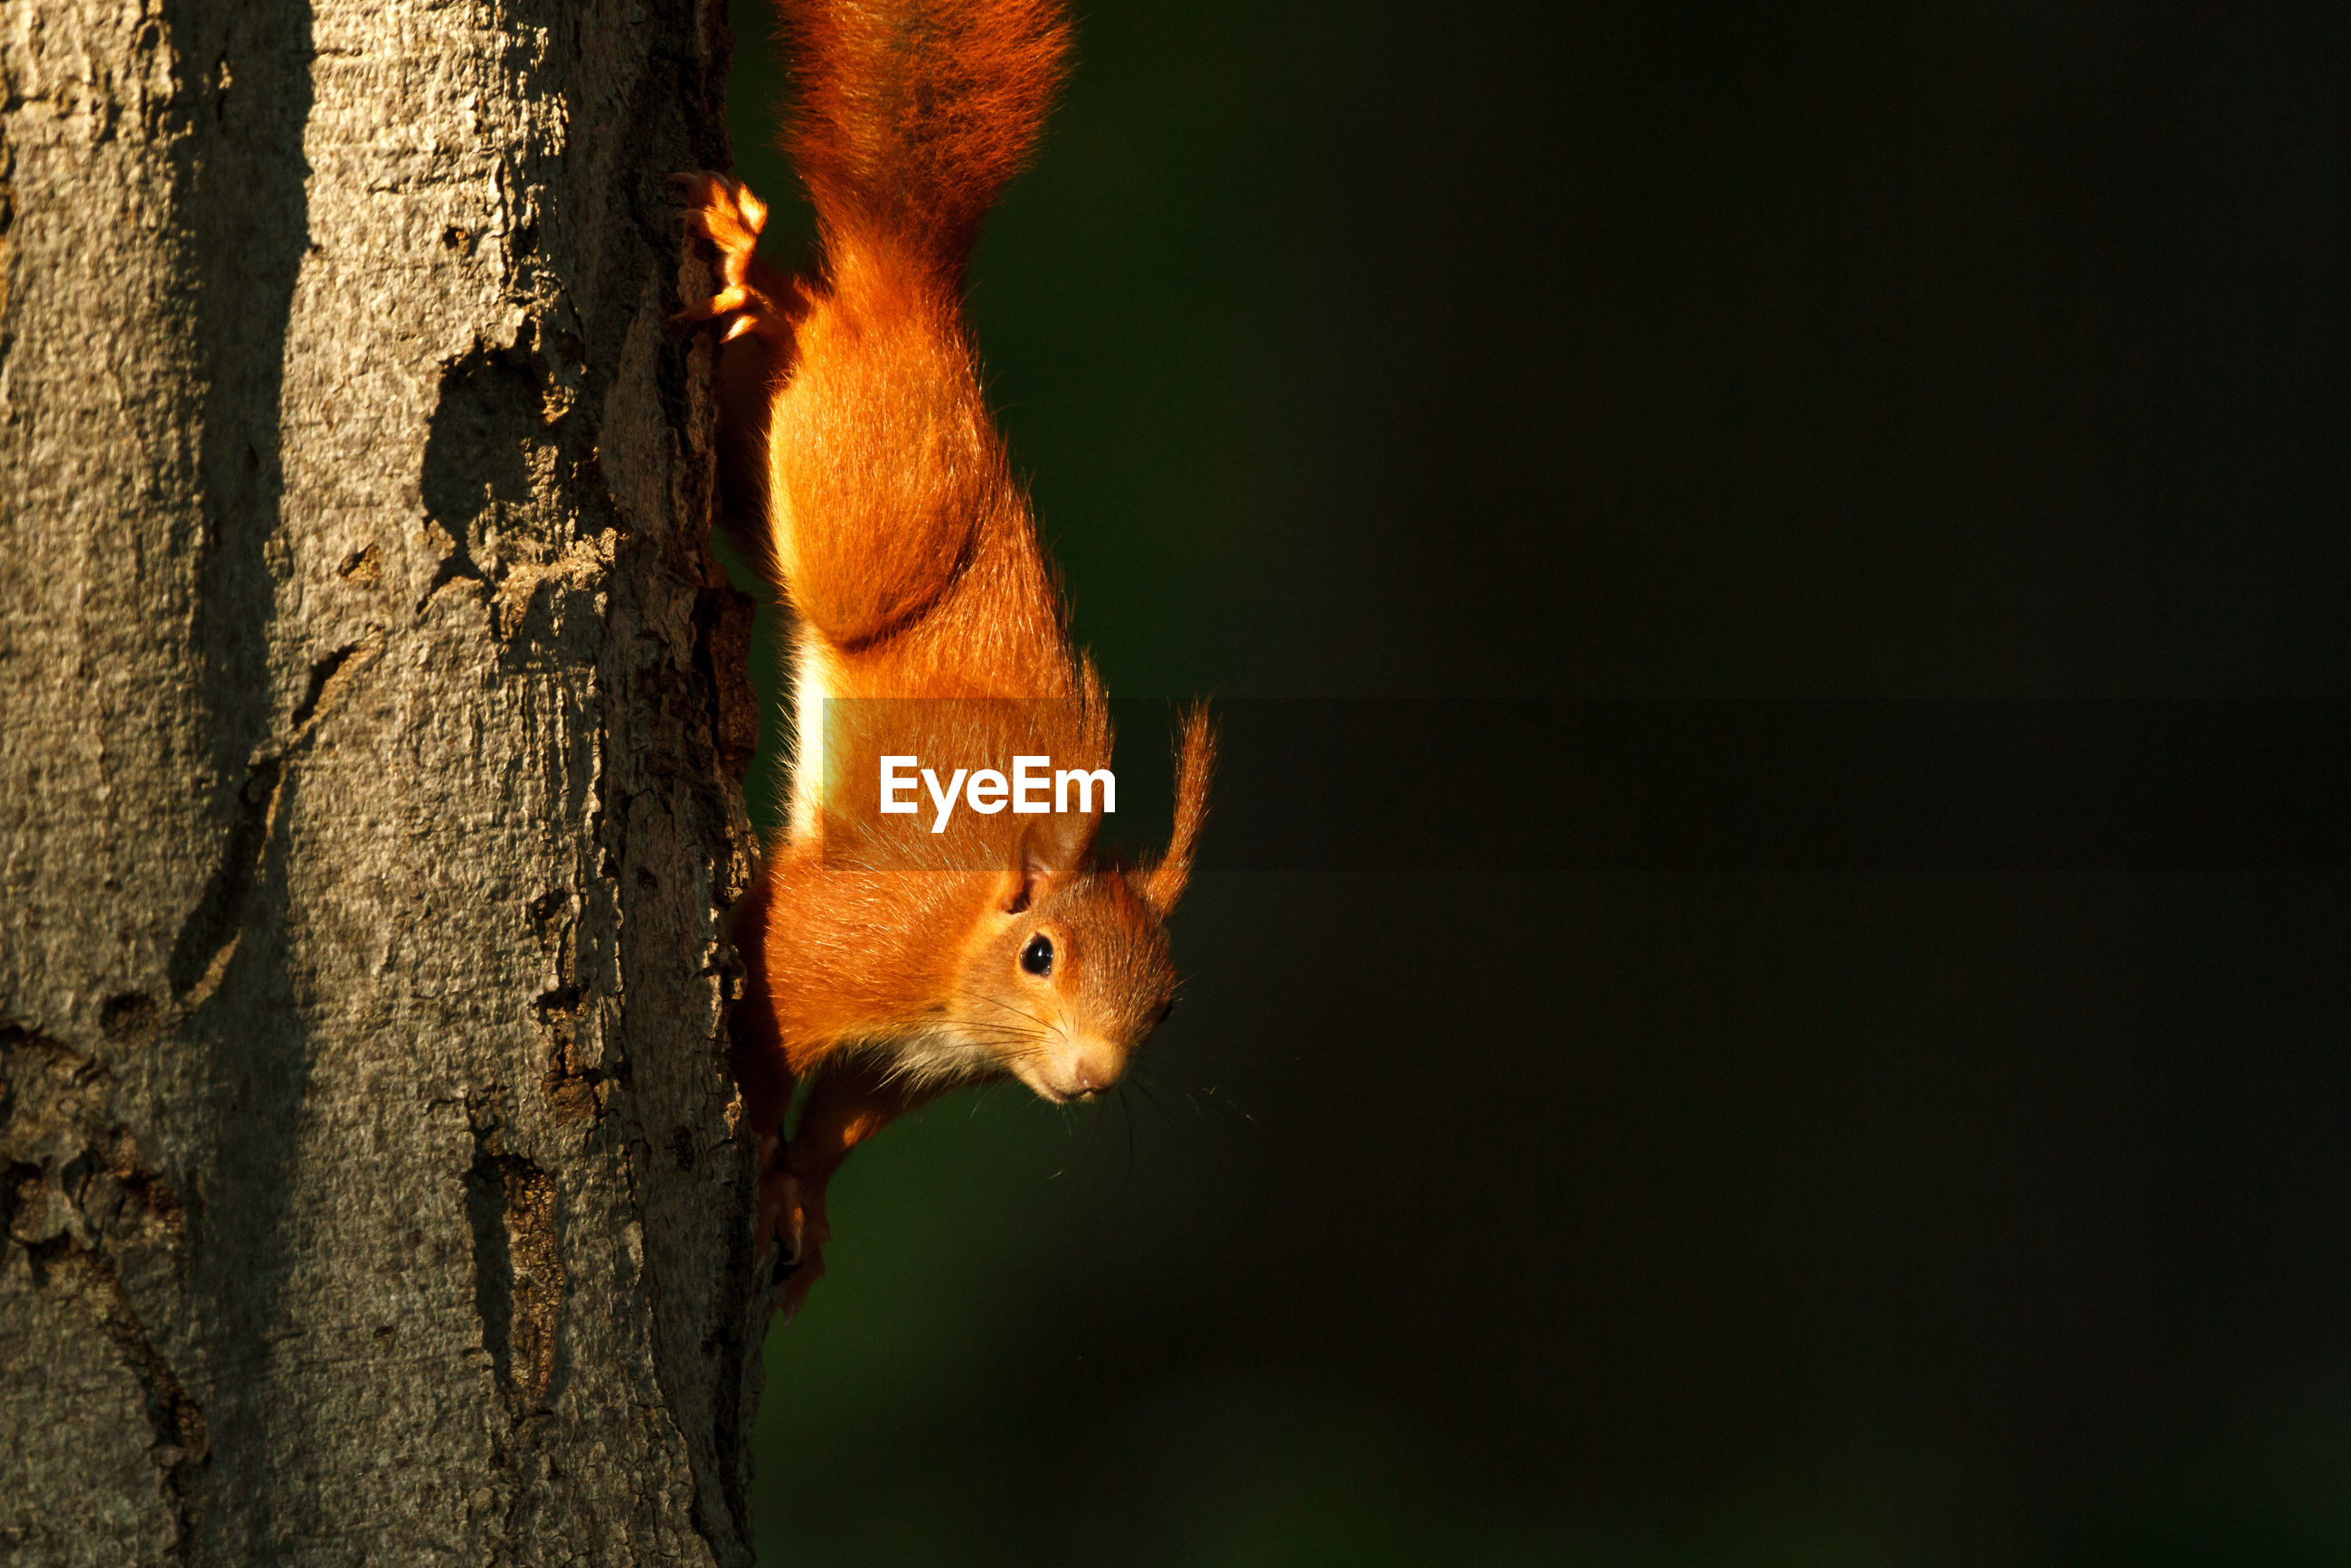 Close-up of red squirrel on tree trunk during sunset